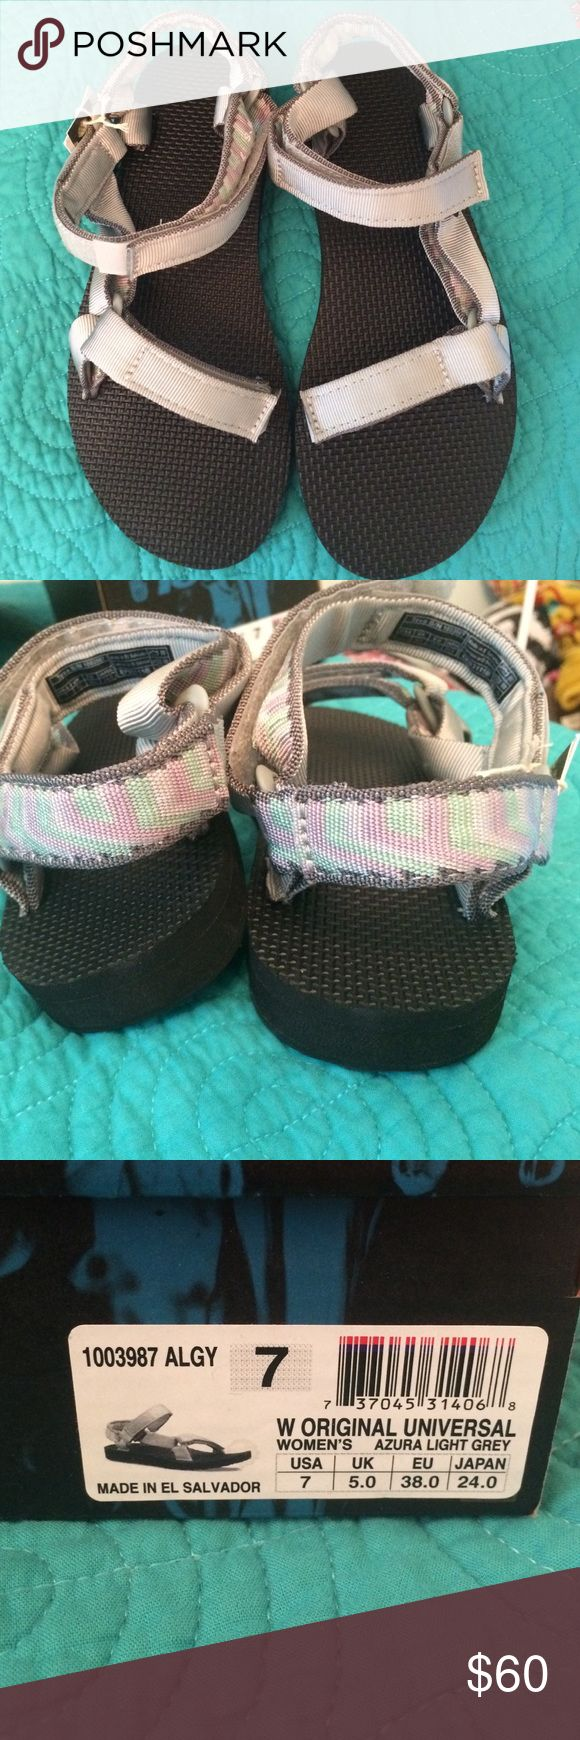 Women's tevas These are gray, with a blue/green and purple design on the back. Super cute, but I have no need because I have multiple pairs of chacos! Check out my closet for a bundle discount! Teva Shoes Sandals